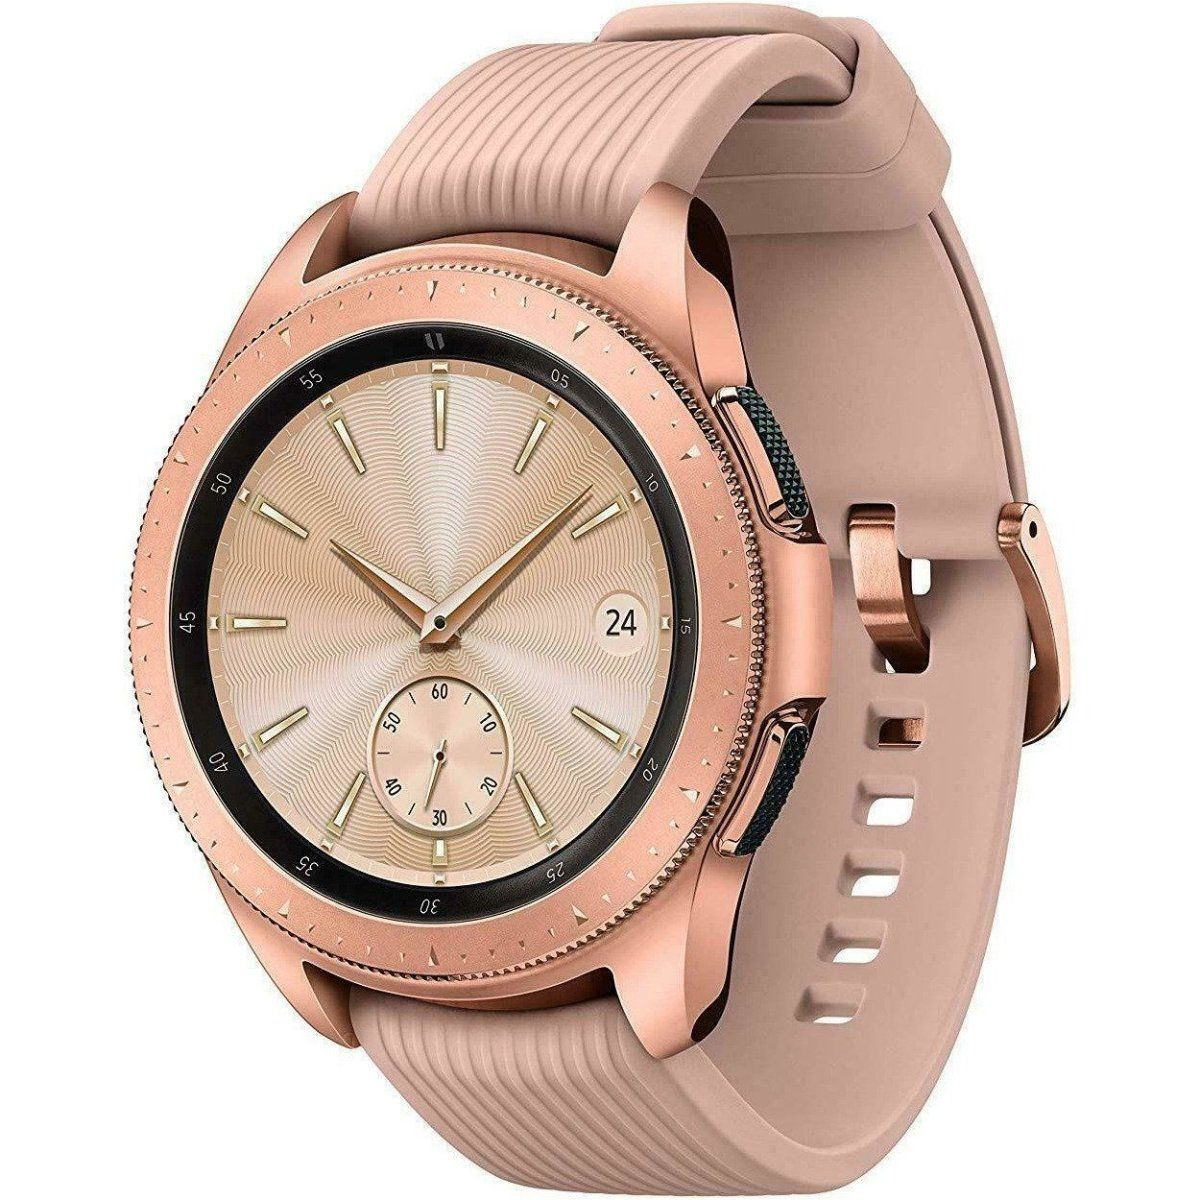 NEW Samsung Galaxy Watch SM-R815U 42mm Bluetooth + 4G LTE Unlocked - Rose Gold - Fix Or Cell Now Device Shop